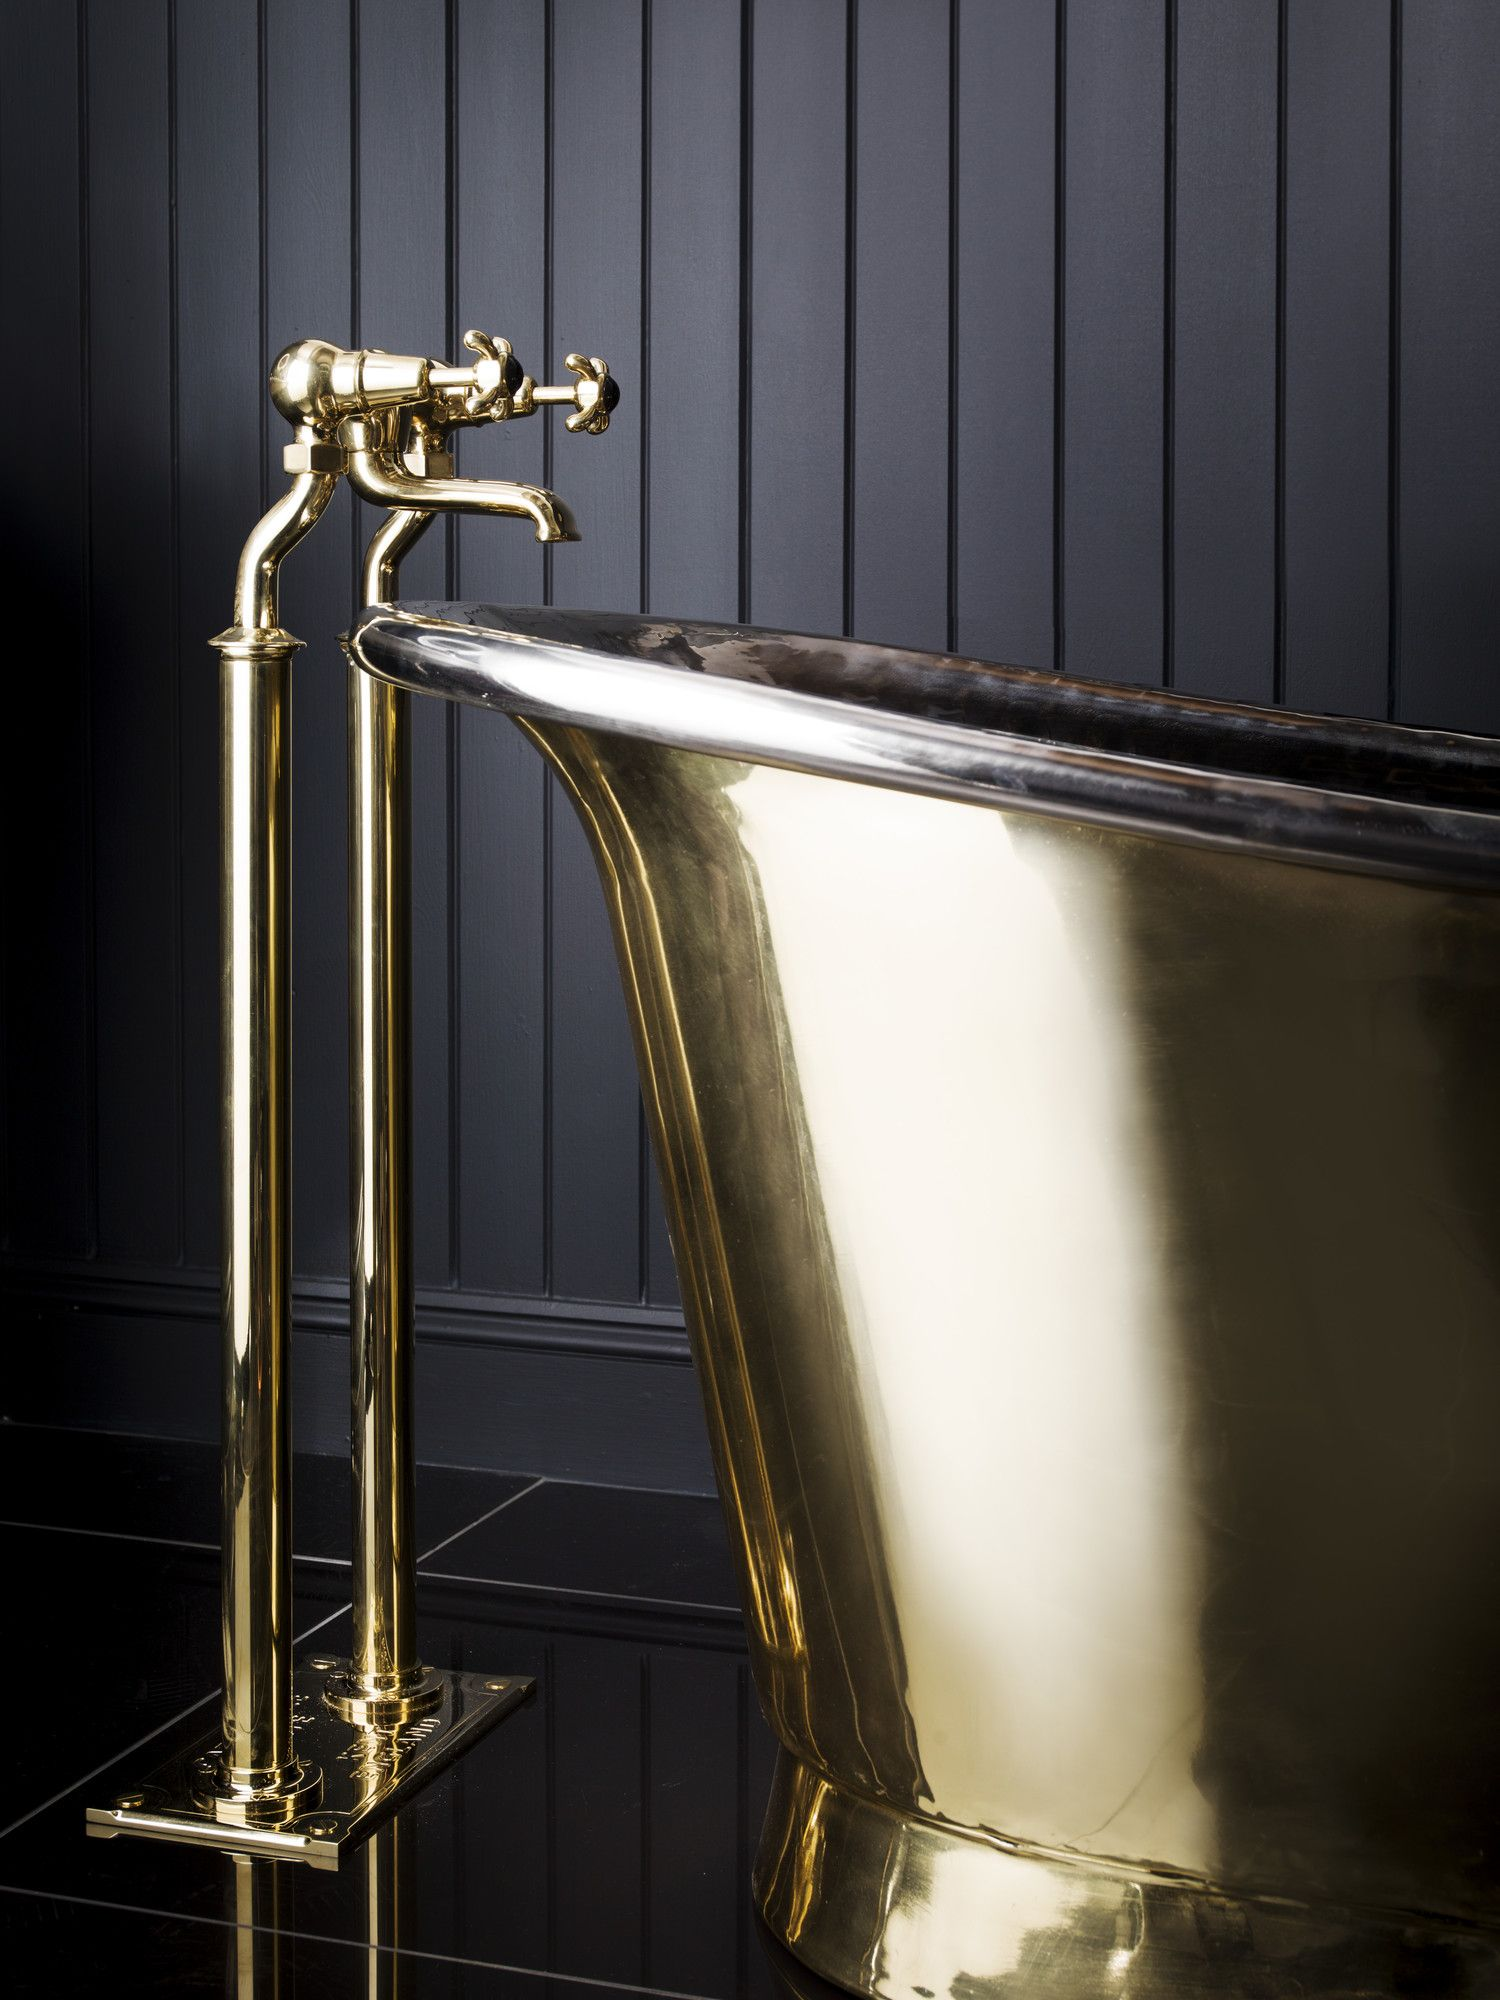 Catchpole   Rye  standpipes in solid  brass are an elegant addition to any  bath. Catchpole   Rye  standpipes in solid  brass are an elegant